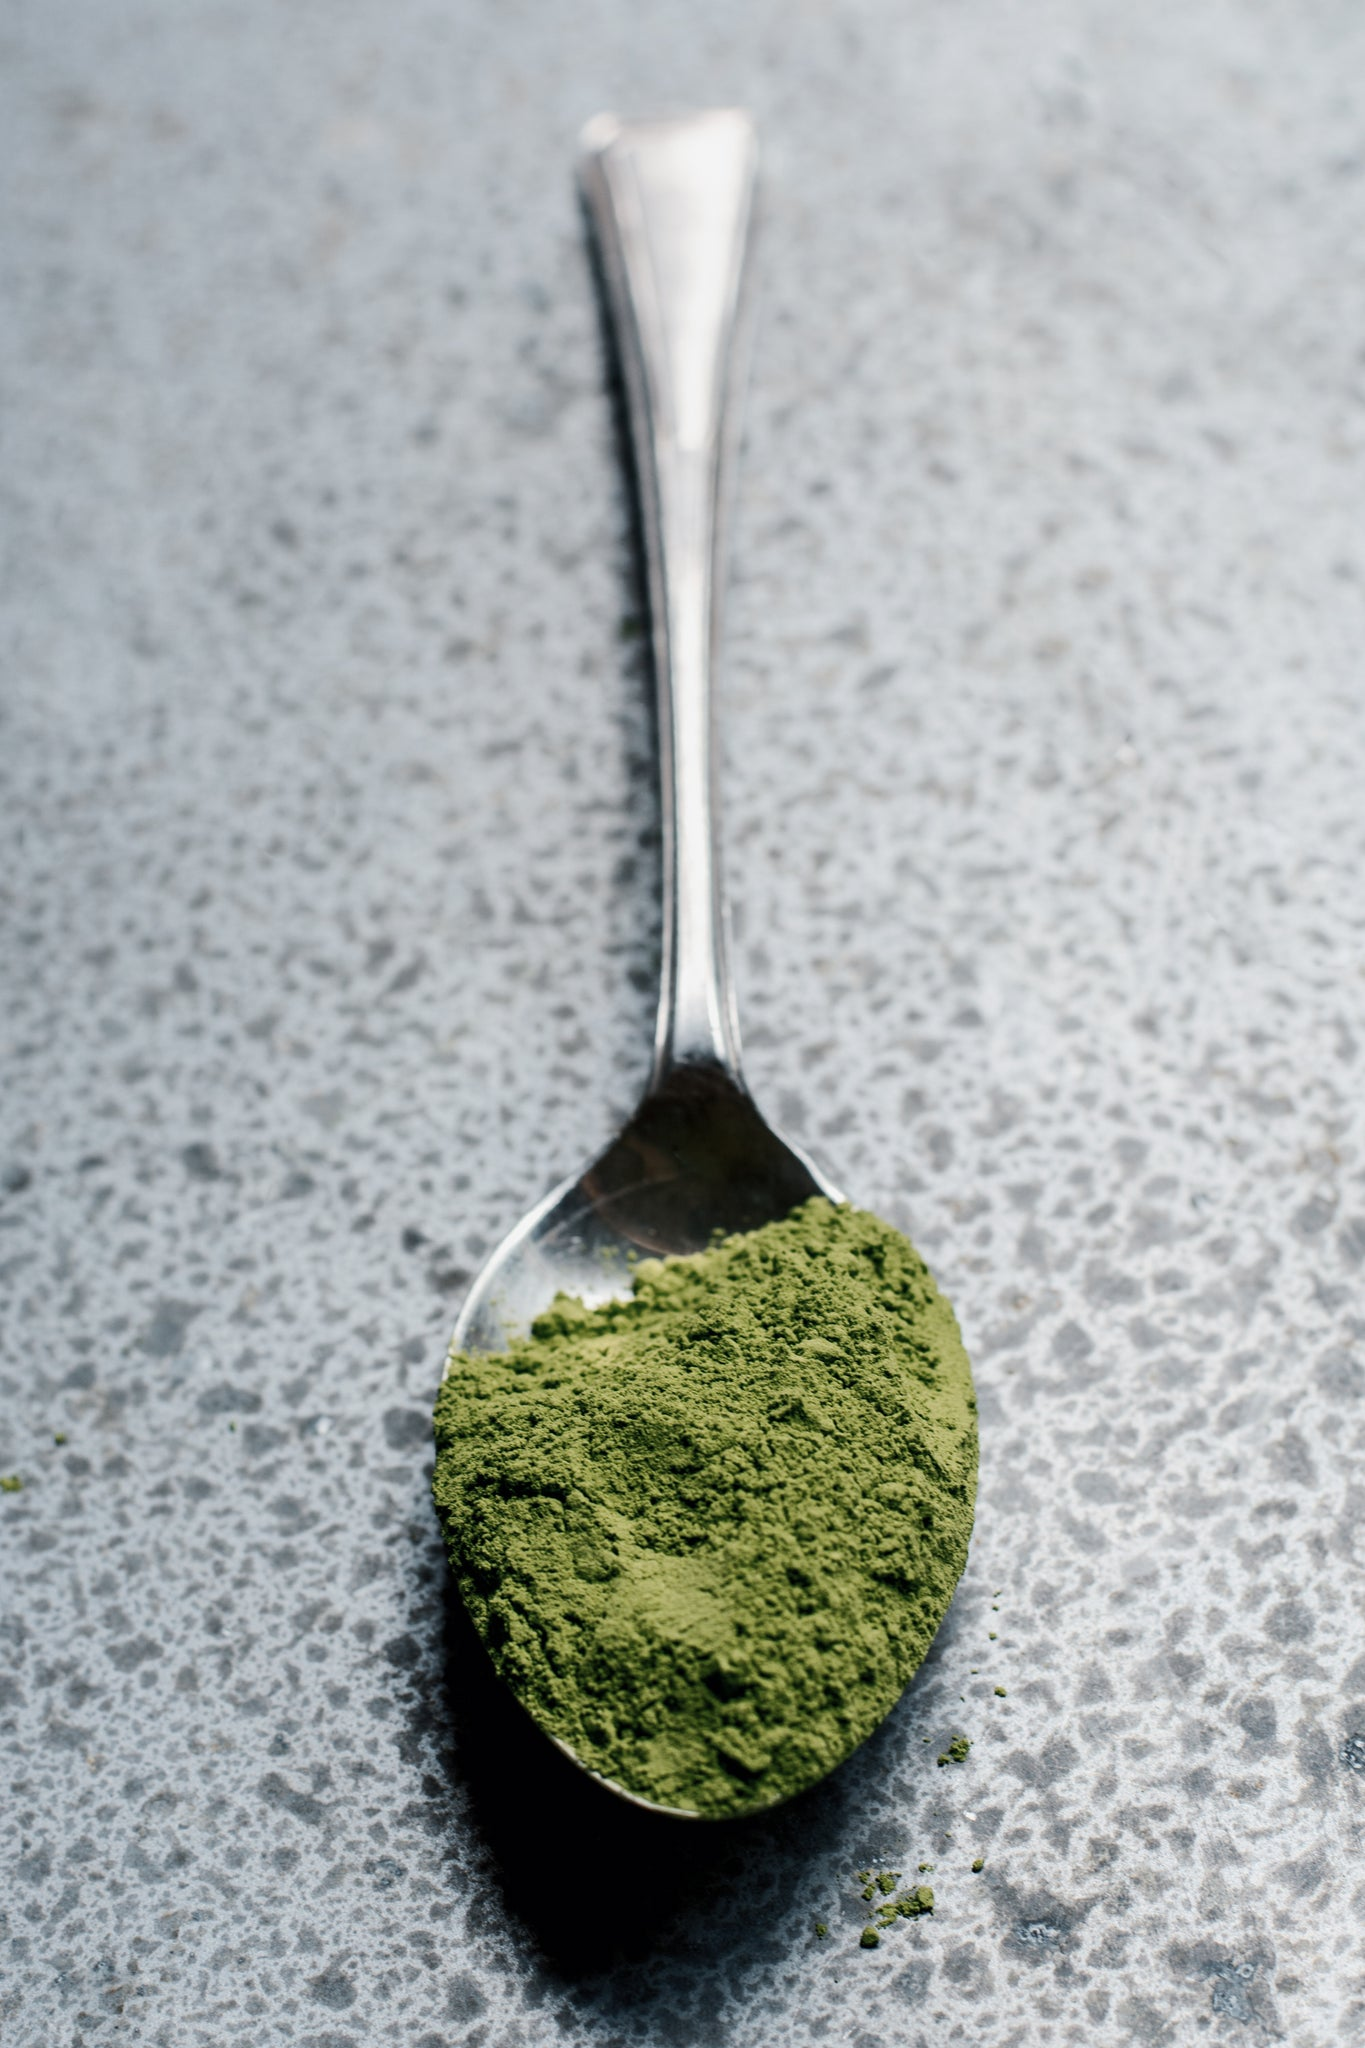 Tablespoon of Barley grass contains  a day's supply of beta-carotene, betaine, biotin, boron, copper, iron, lutein, magnesium, niacin, riboflavin, and thiamine.